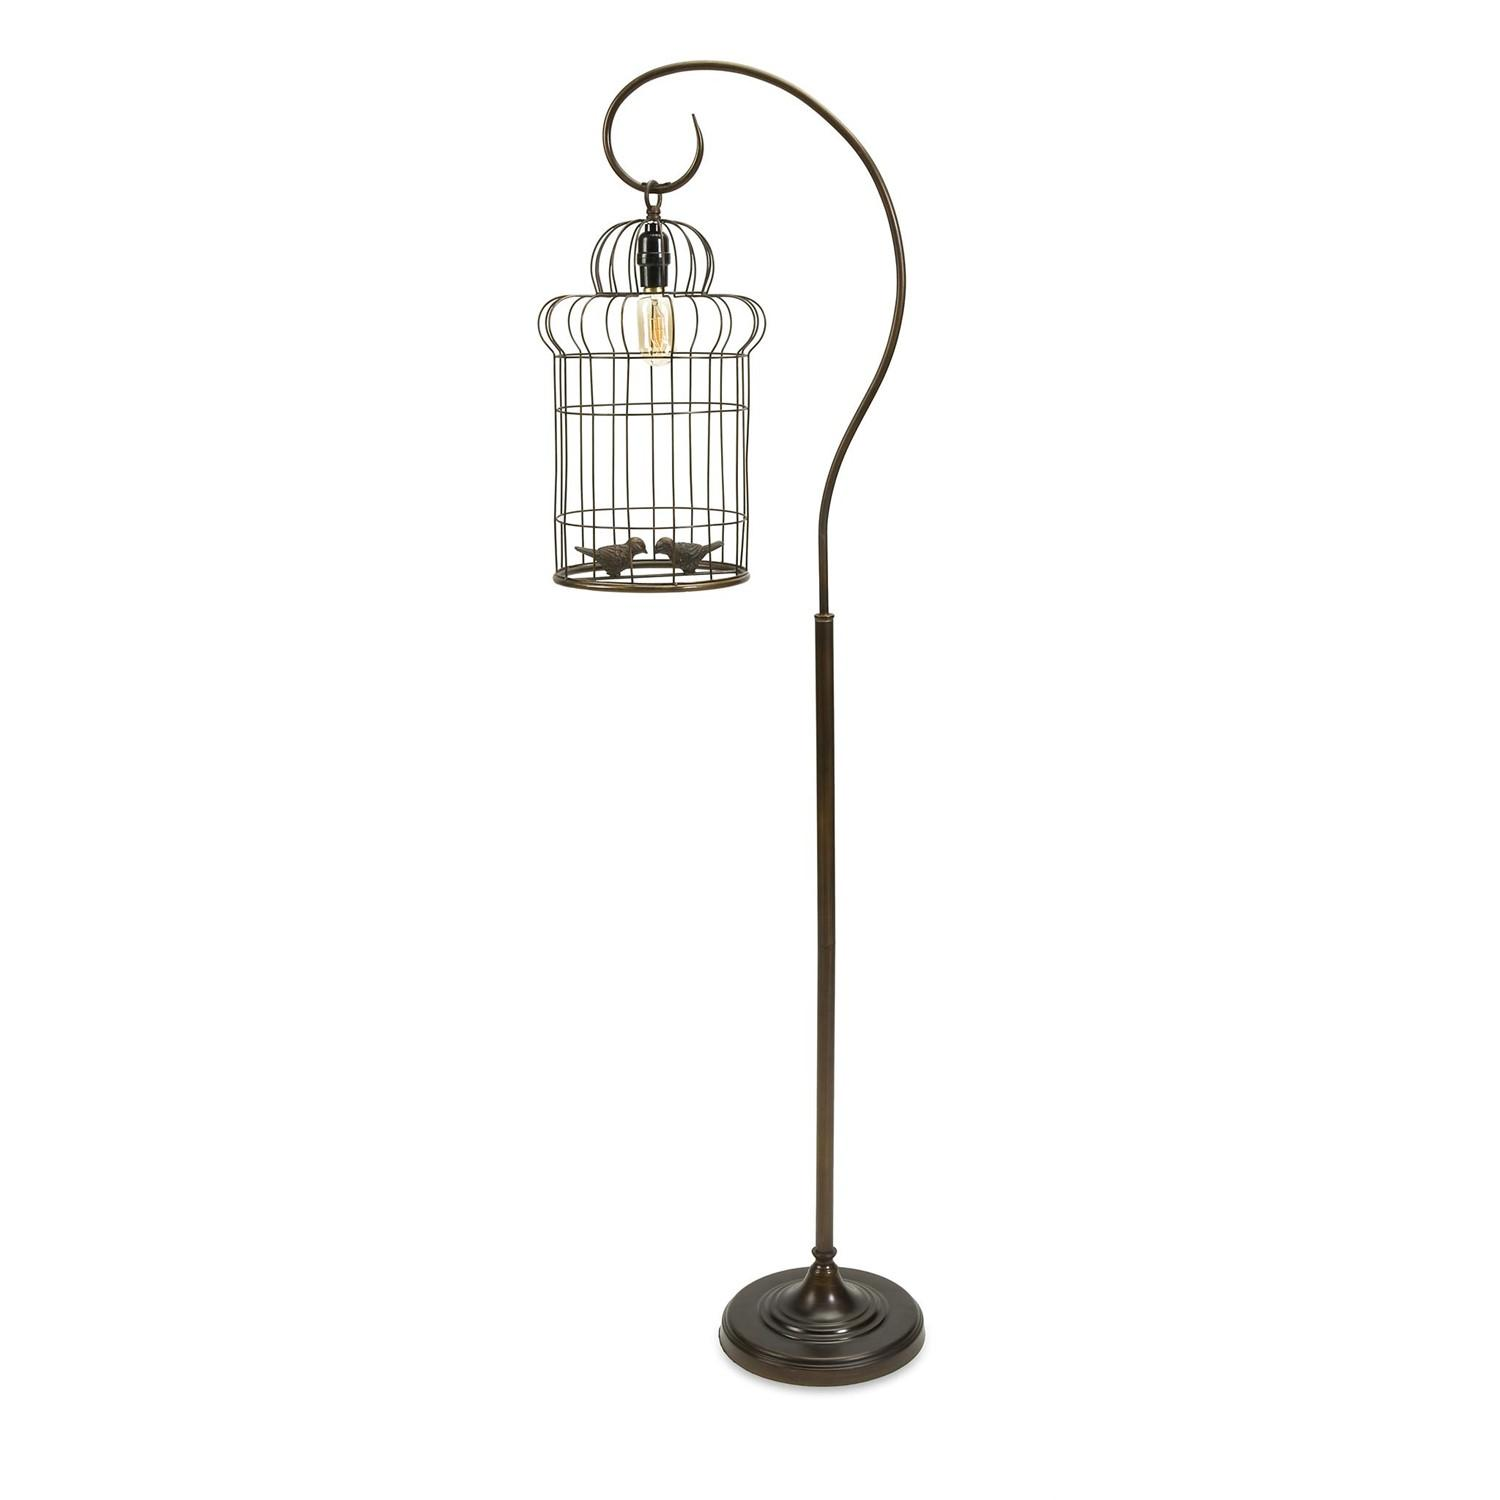 61 Innovative Love Birds Birdcage Decorative Floor Lamp